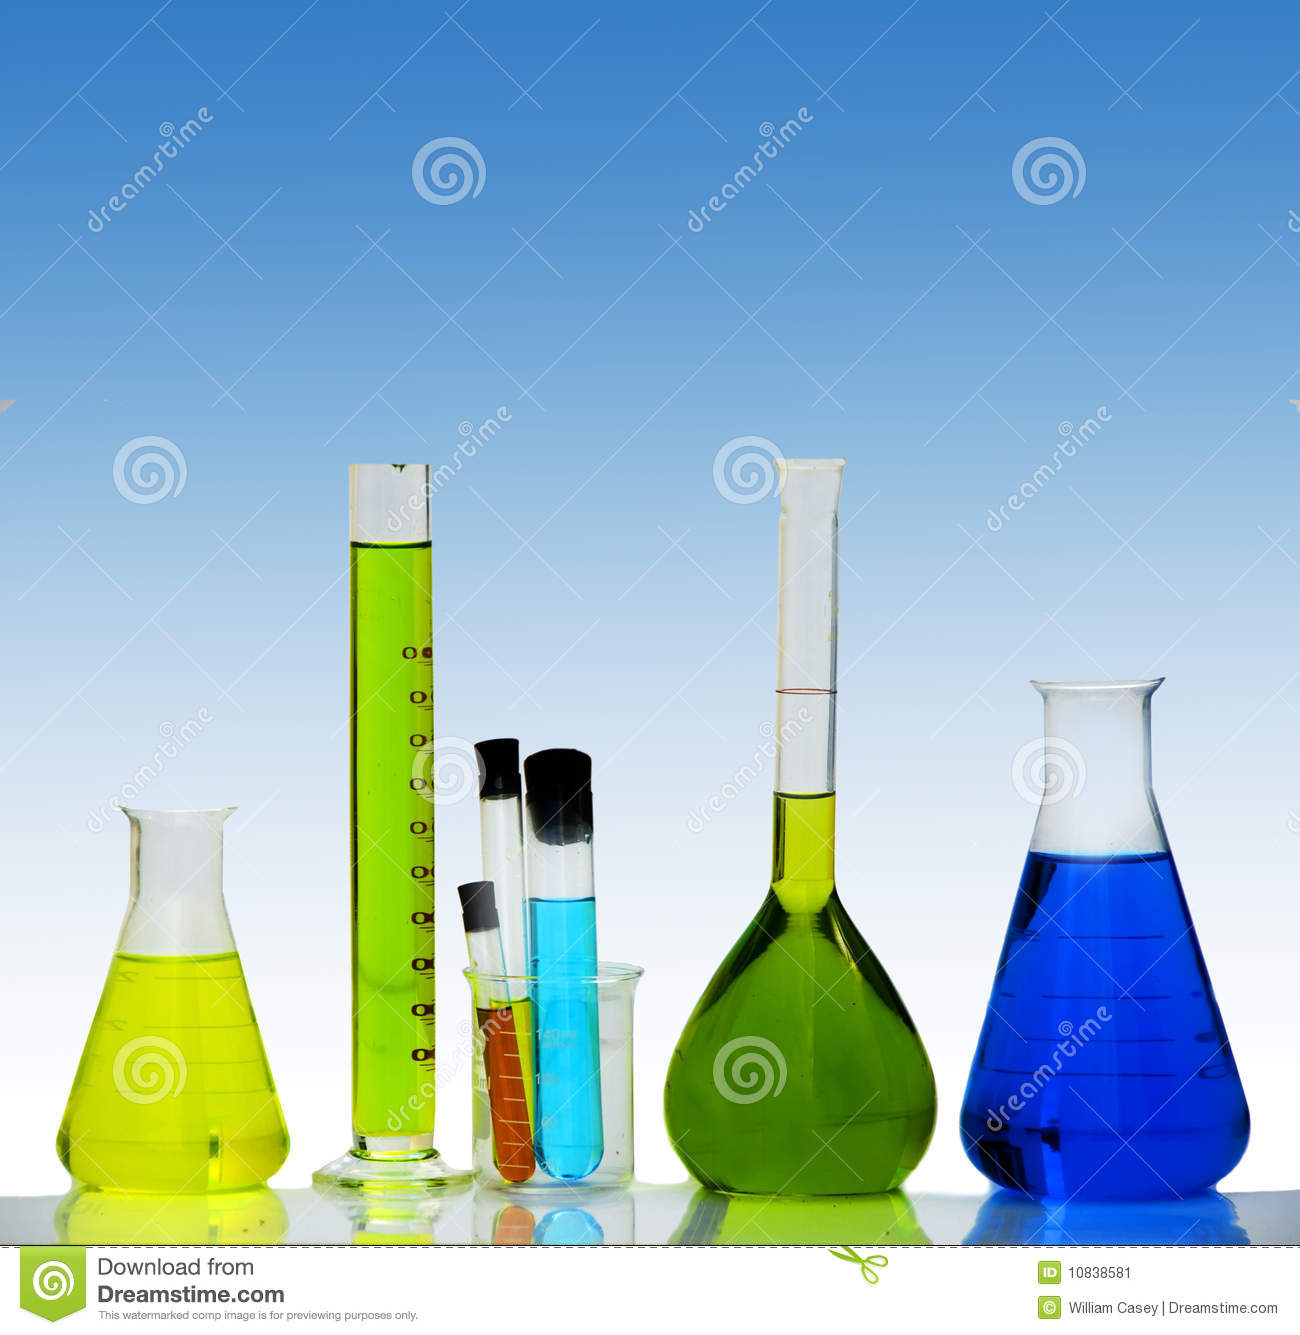 clipart test tubes and beakers - photo #48